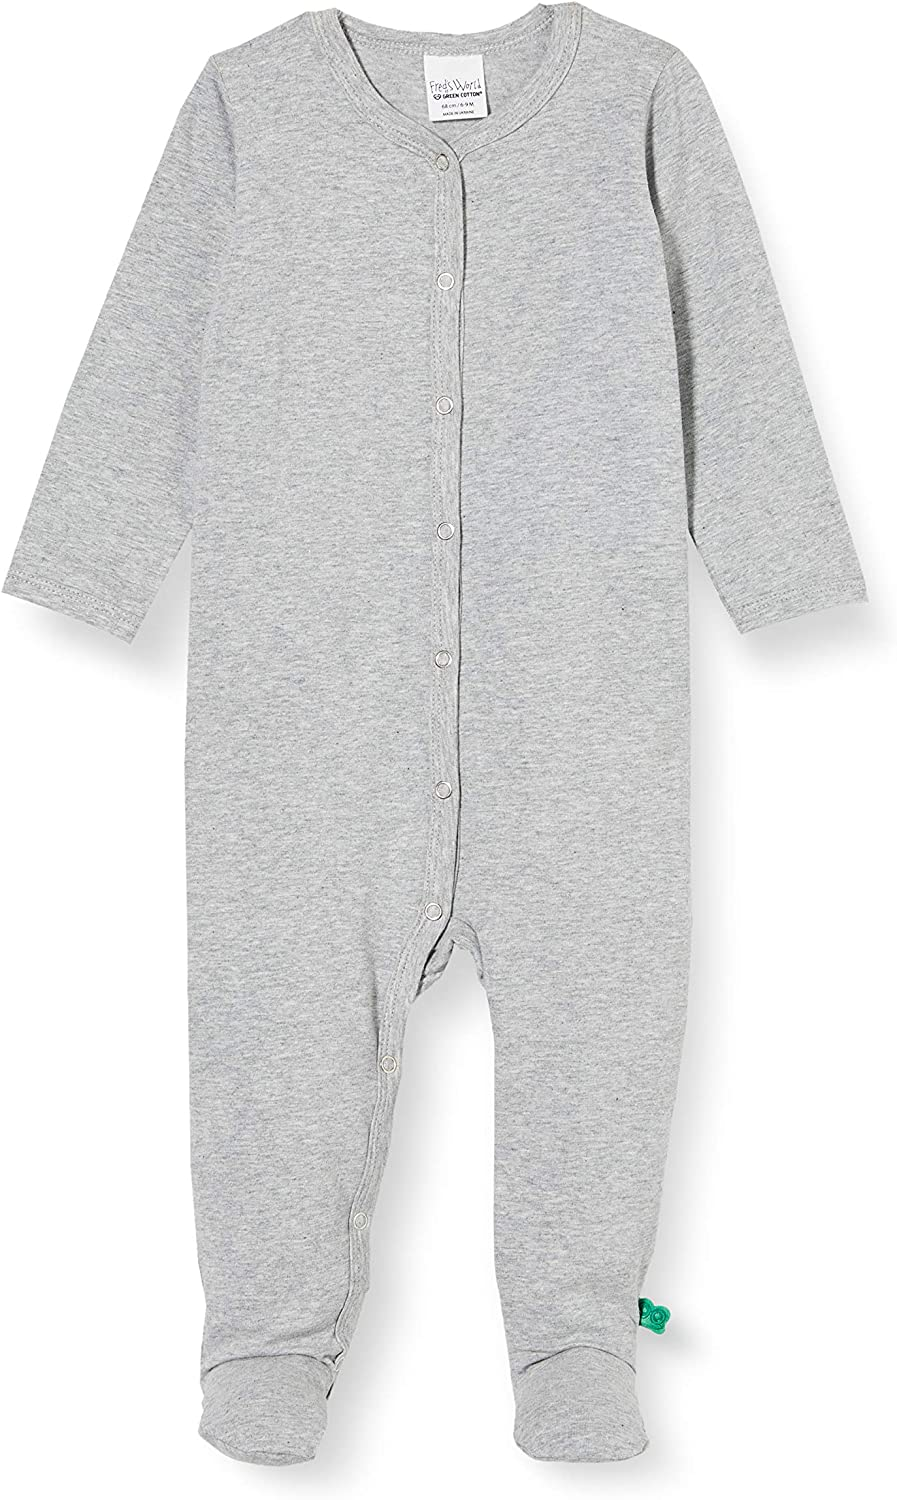 Freds World by Green Cotton Baby-Jungen Alfa Bodysuit with Feet and Toddler Sleepers